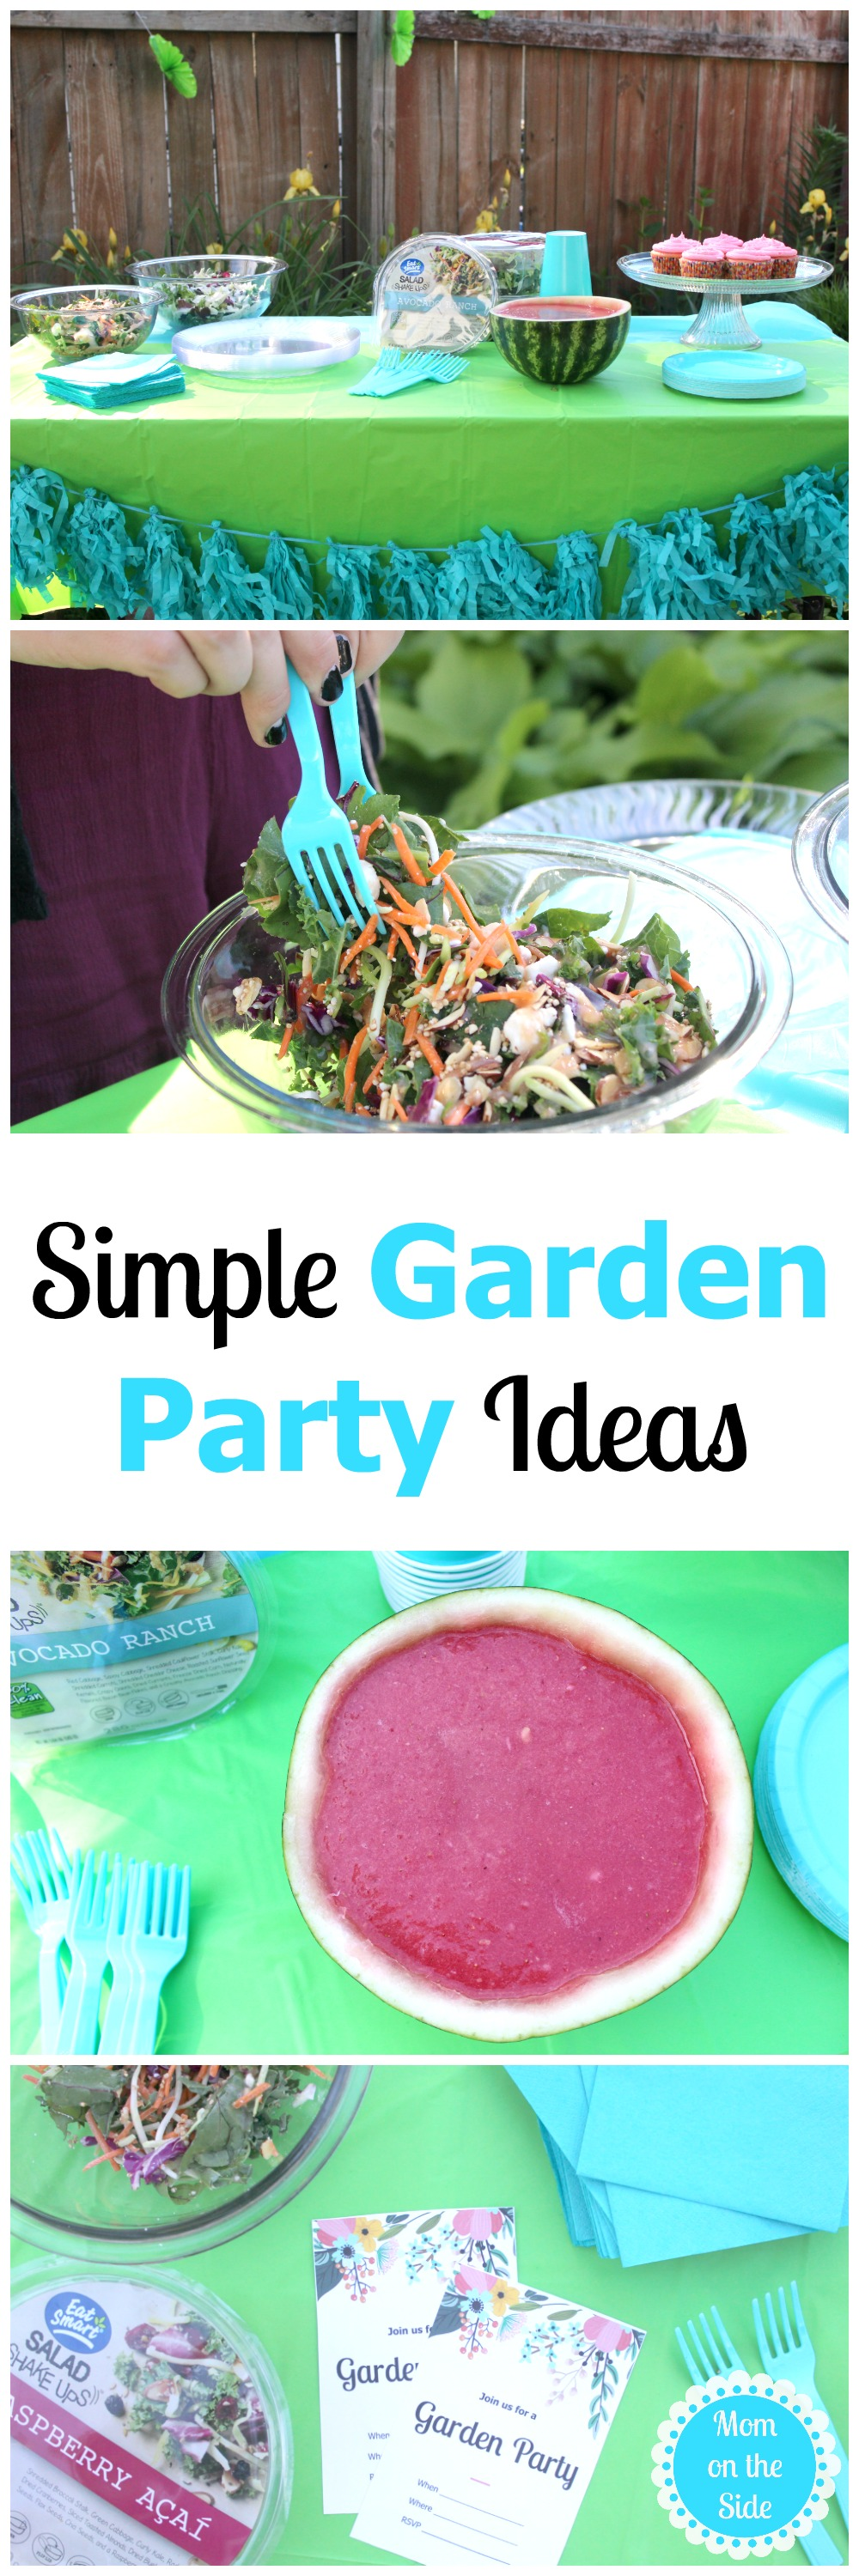 Garden Party Ideas for Spring